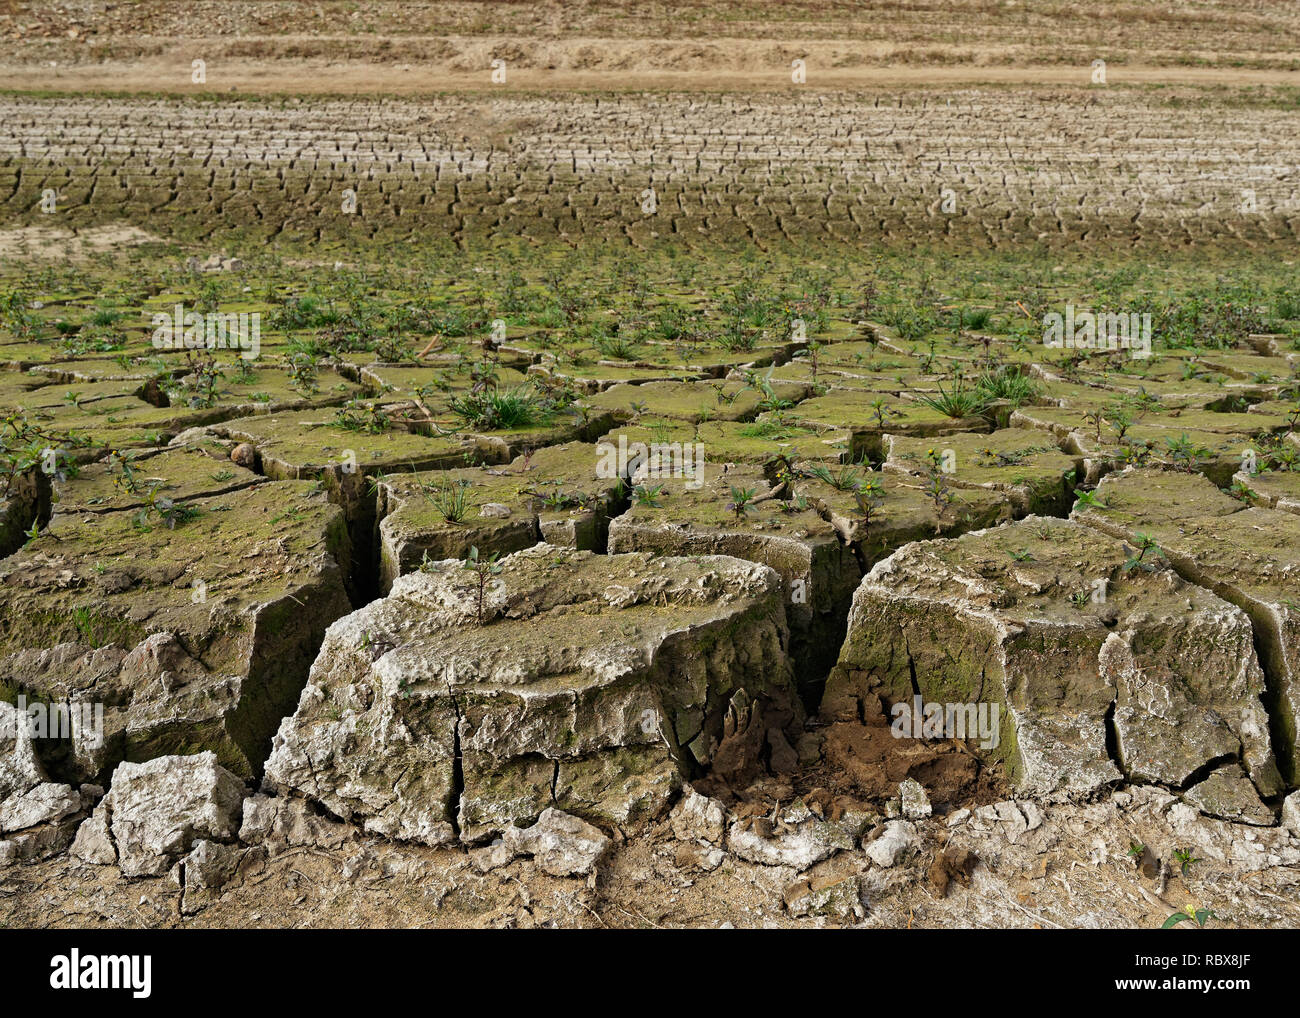 Shore of a dry lake, the earth has broken up into large floes, small plants have grown, the dryness is clearly visible, consequence of the hot summer  - Stock Image